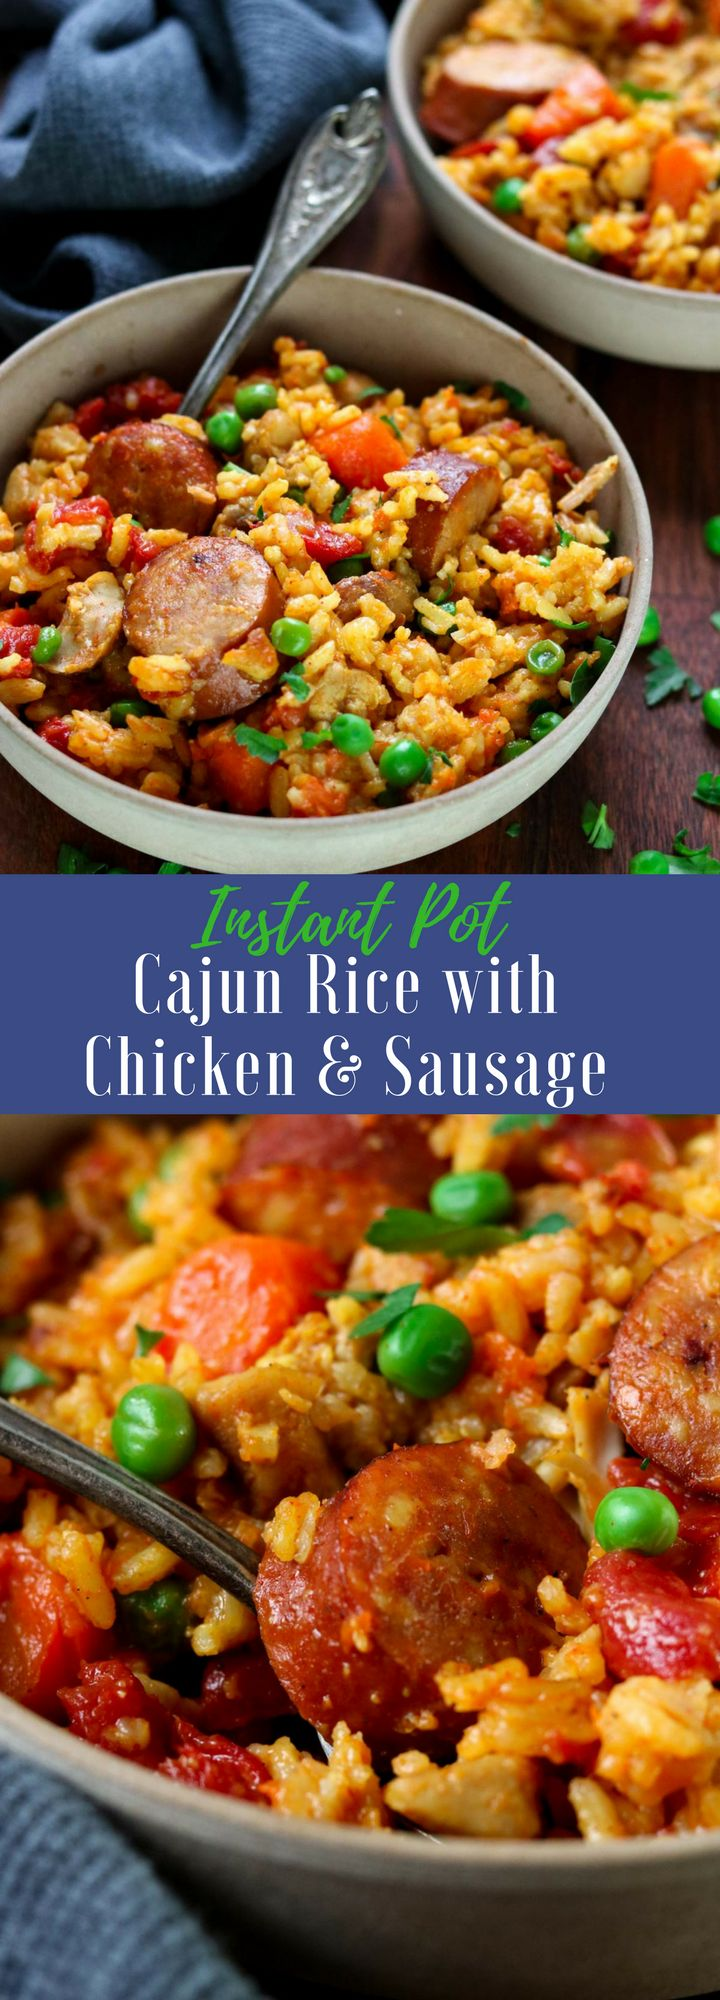 Instant Pot Cajun Rice with Chicken and Sausages pinterest Image